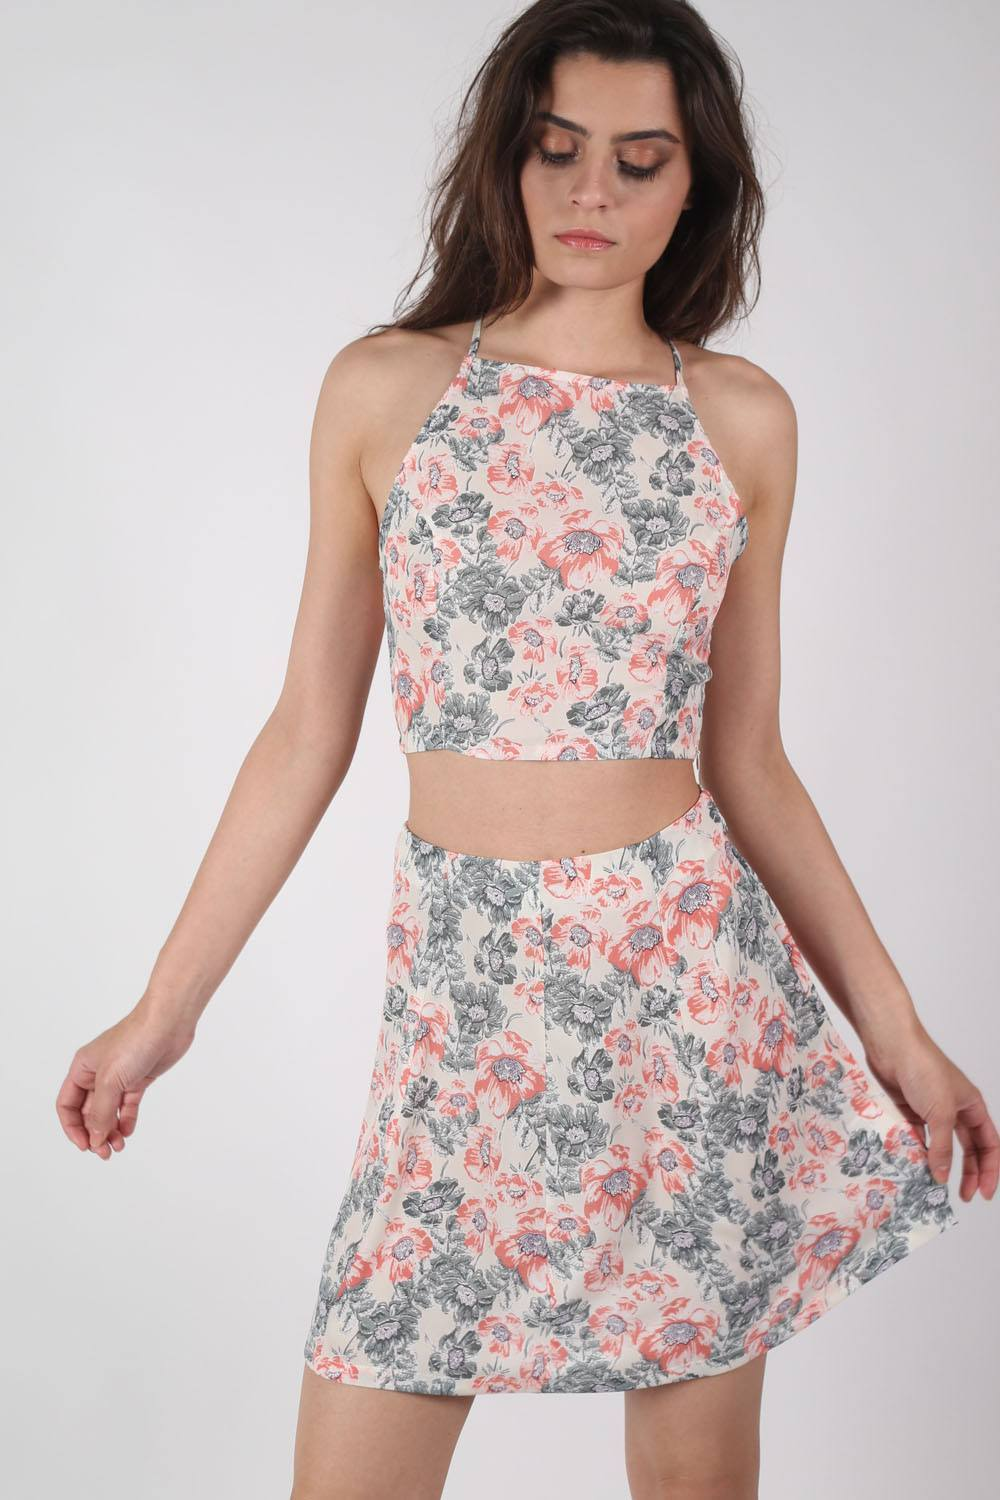 Floral Print Crop Top in Pale Pink 0